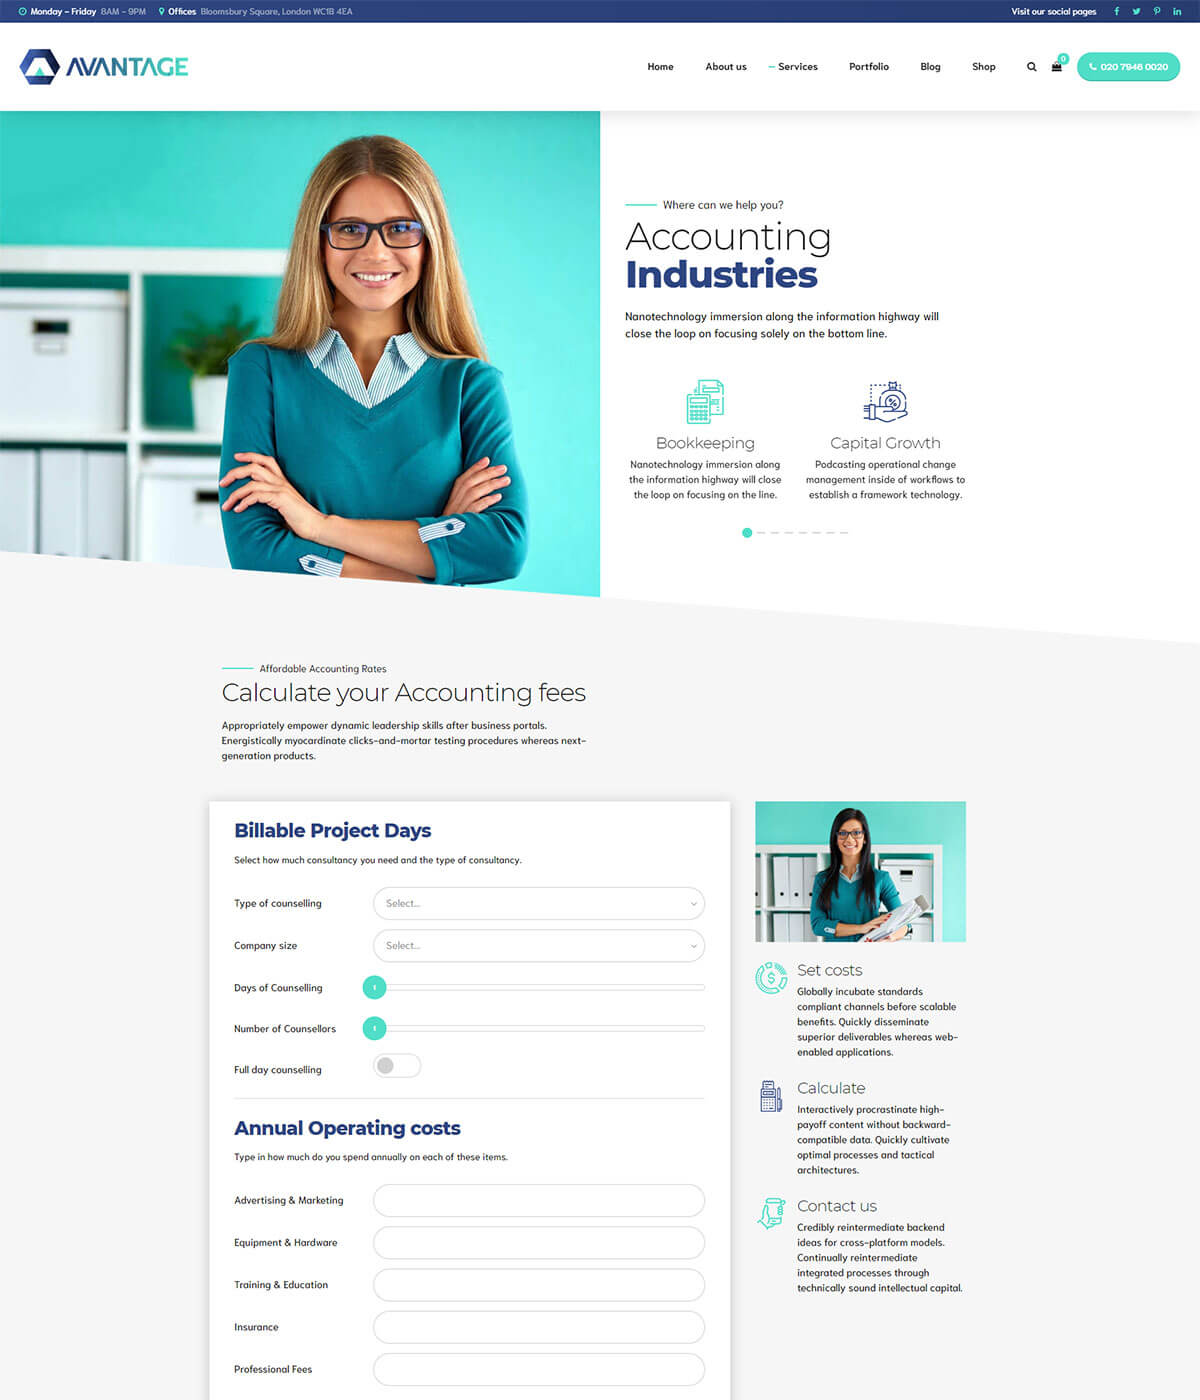 http://avantage.bold-themes.com/wp-content/uploads/2019/05/accountant-10-cc.jpg